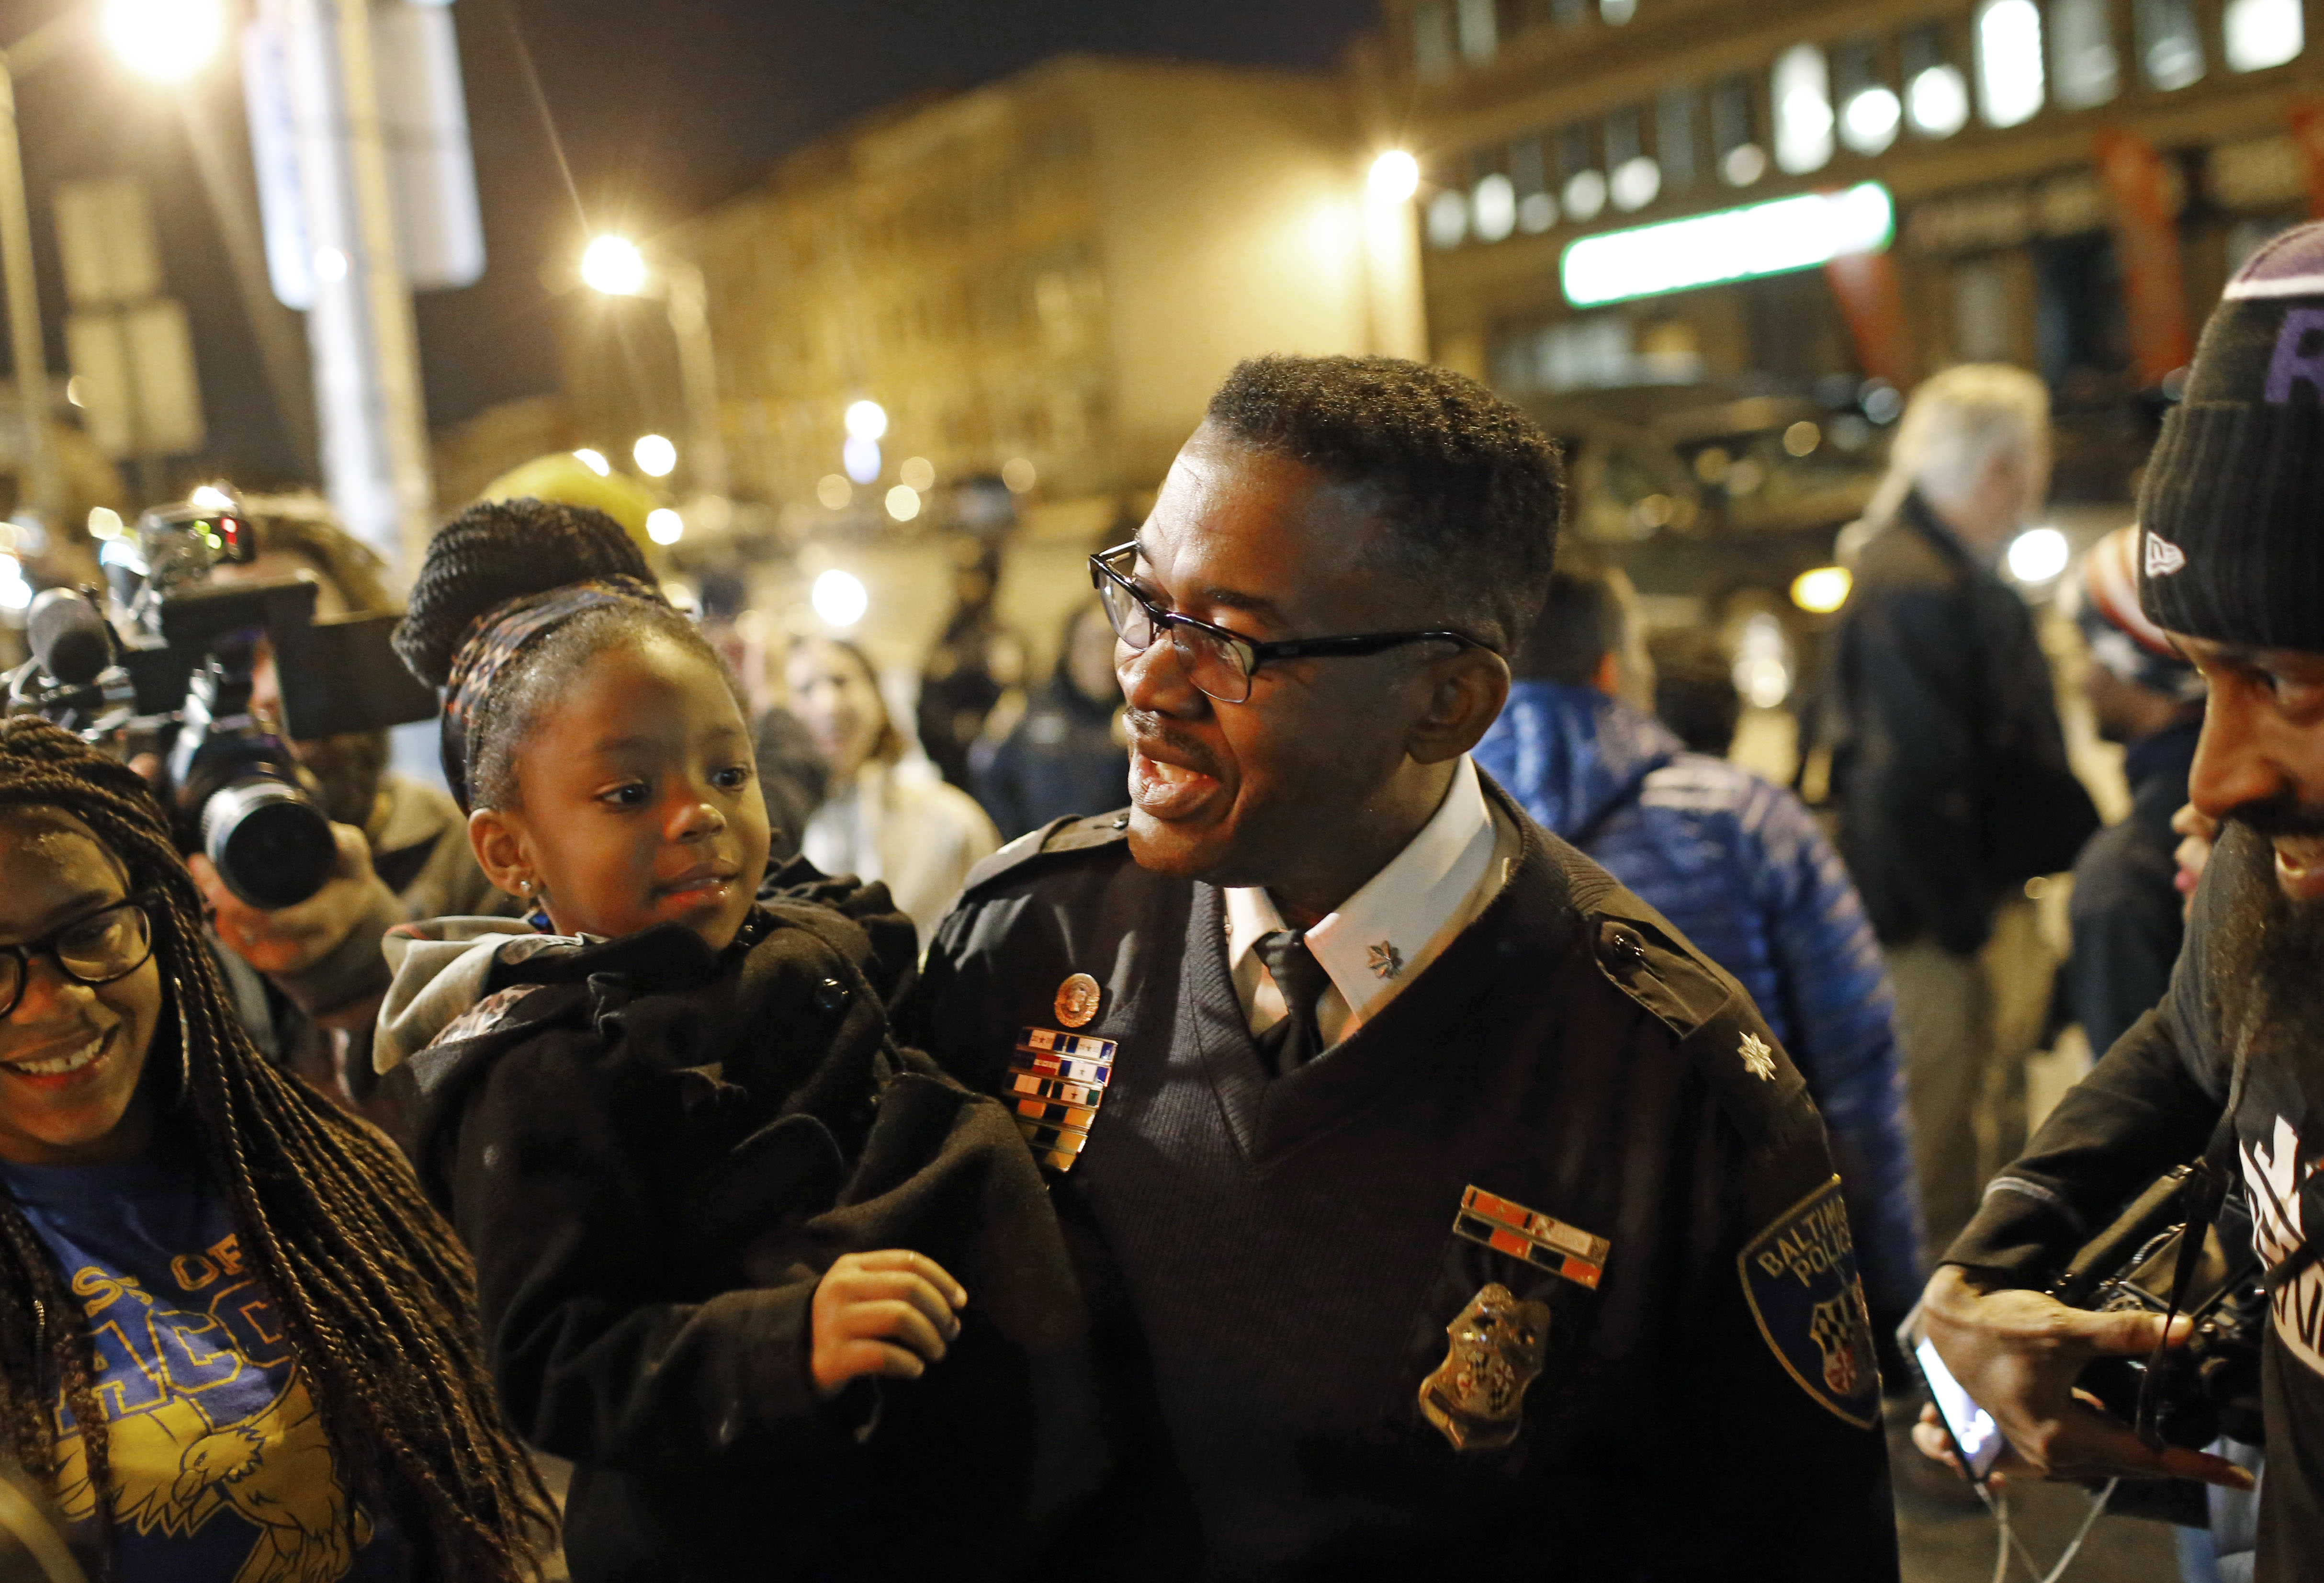 Baltimore Police Department Lt. Col. Melvin Russell, right, holds Paris Brown, 3, as he visits with residents near the intersection of North and Pennsylvania Avenues, the site of unrest following the funeral of Freddie Gray, Wednesday, Dec. 16, 2015, in Baltimore. Peaceful protests took place in response to a hung jury and mistrial for Officer William Porter, one of six Baltimore city police officers charged in connection to Gray's death. (AP Photo/Patrick Semansky)